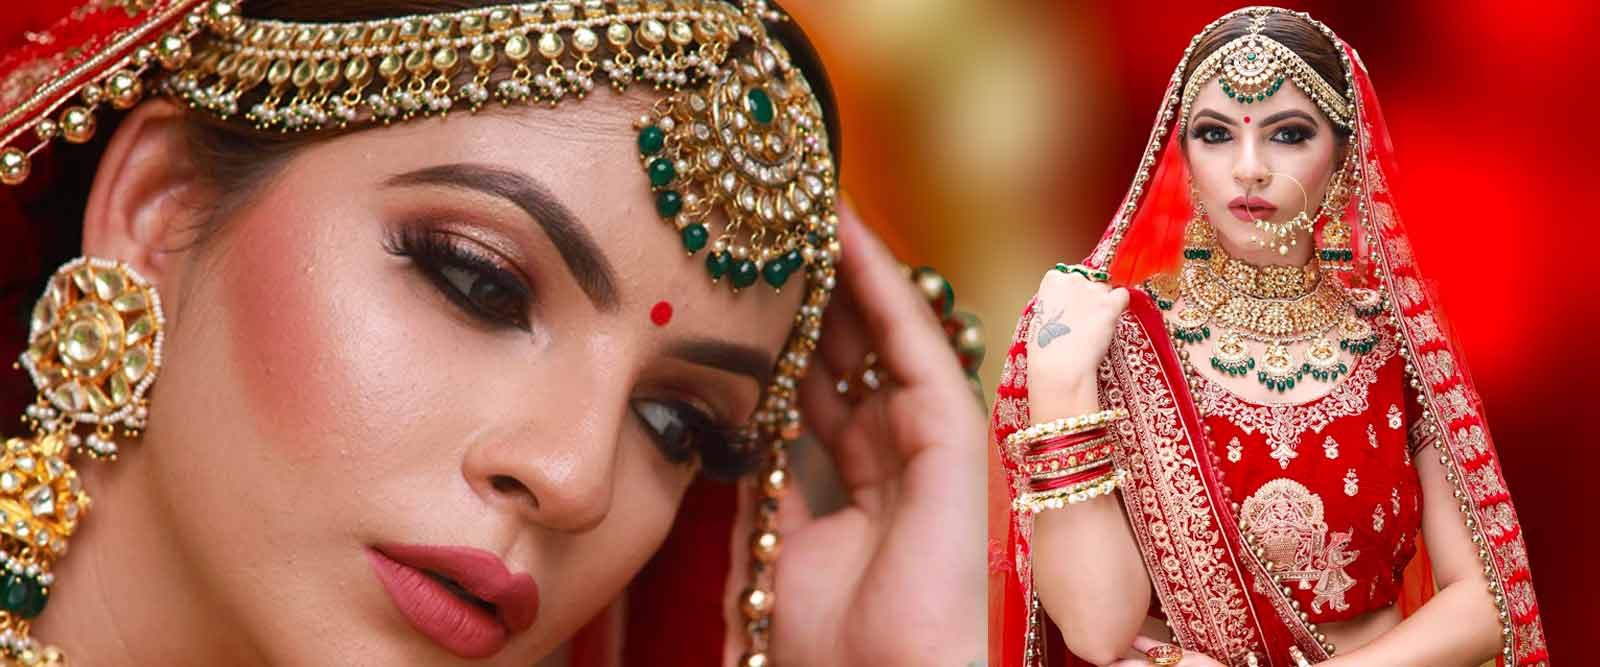 Wedding Makeup Artist in Shalimar Bagh